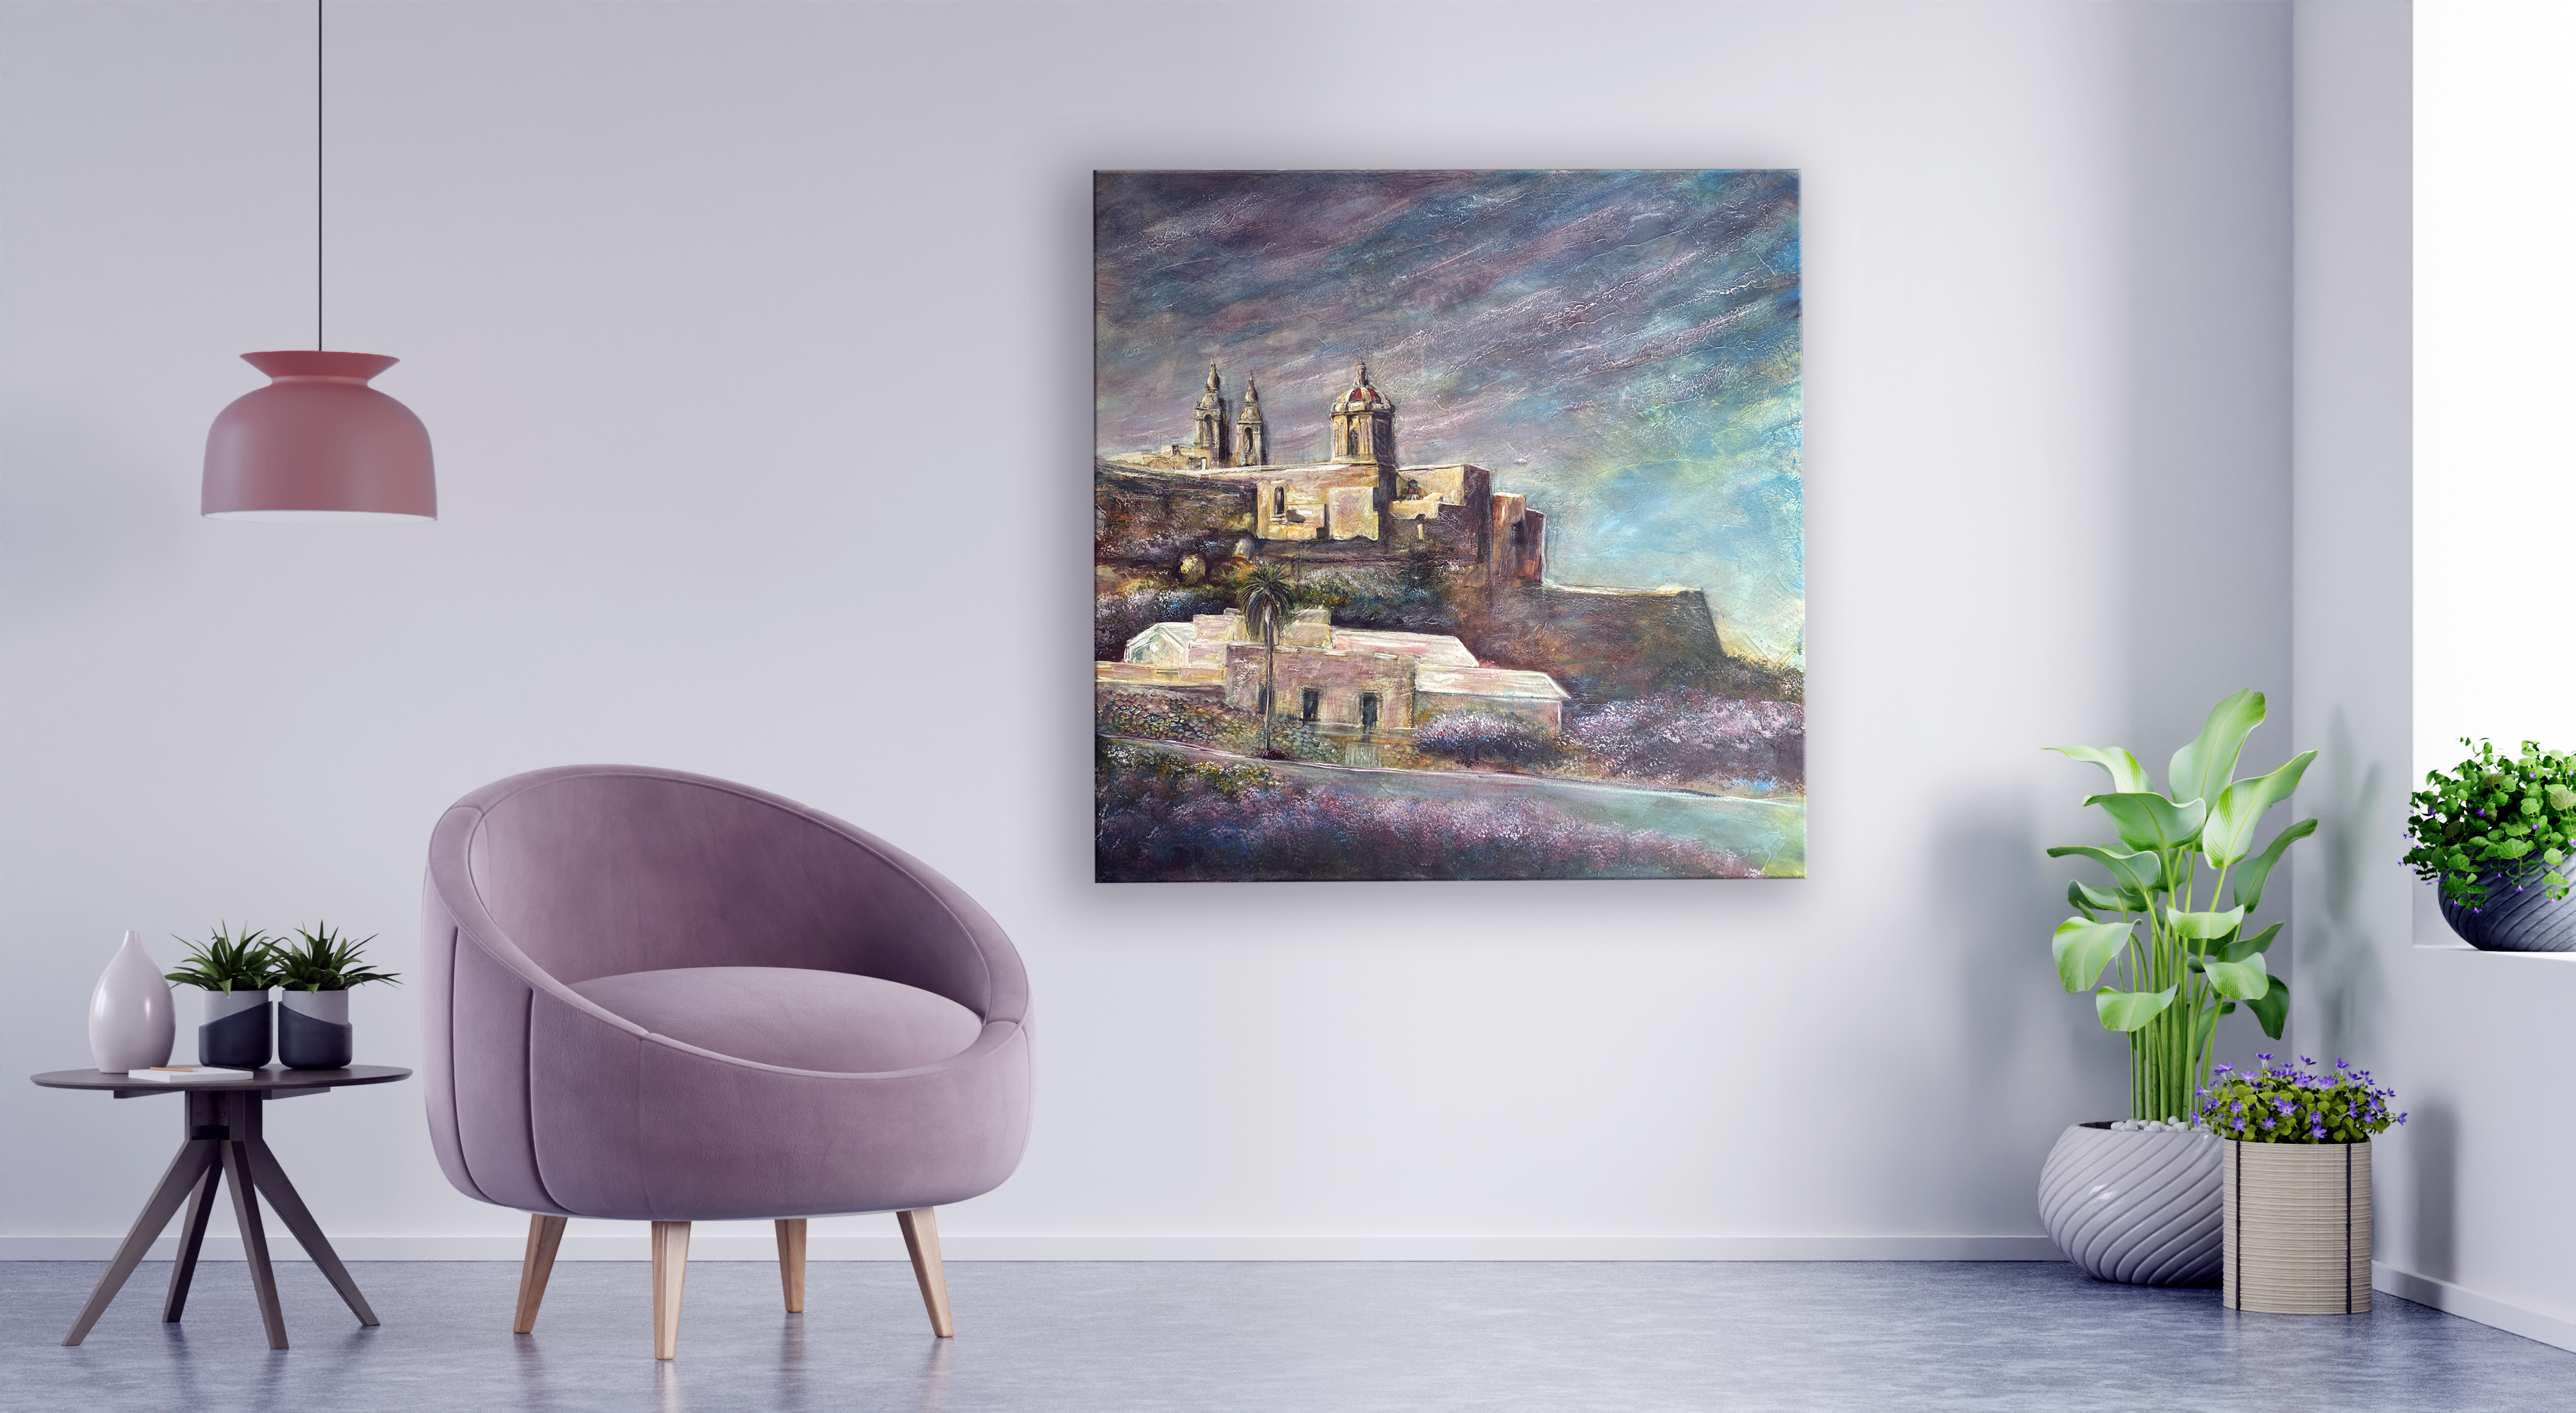 Mdina 100x100cm Acrylic on Canvas - Coro